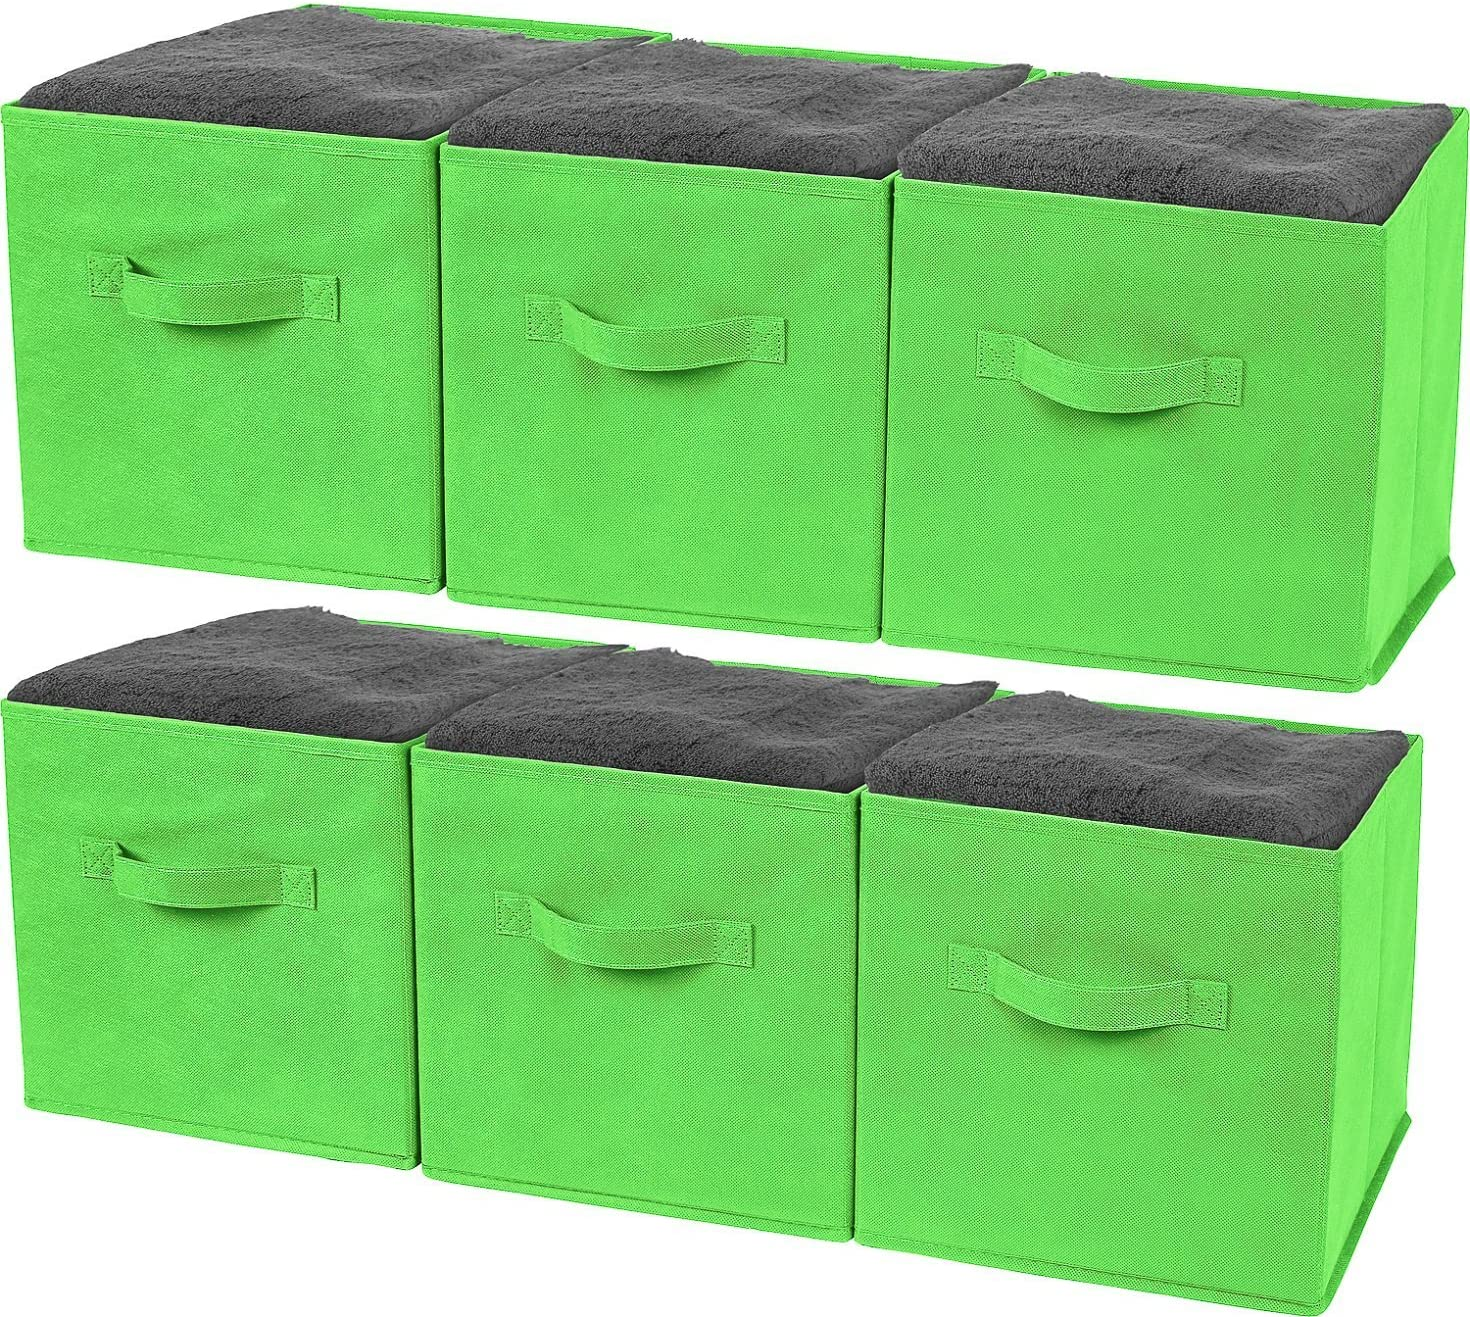 Greenco Foldable Storage Cubes Non-woven Fabric -6 Pack-(Green)